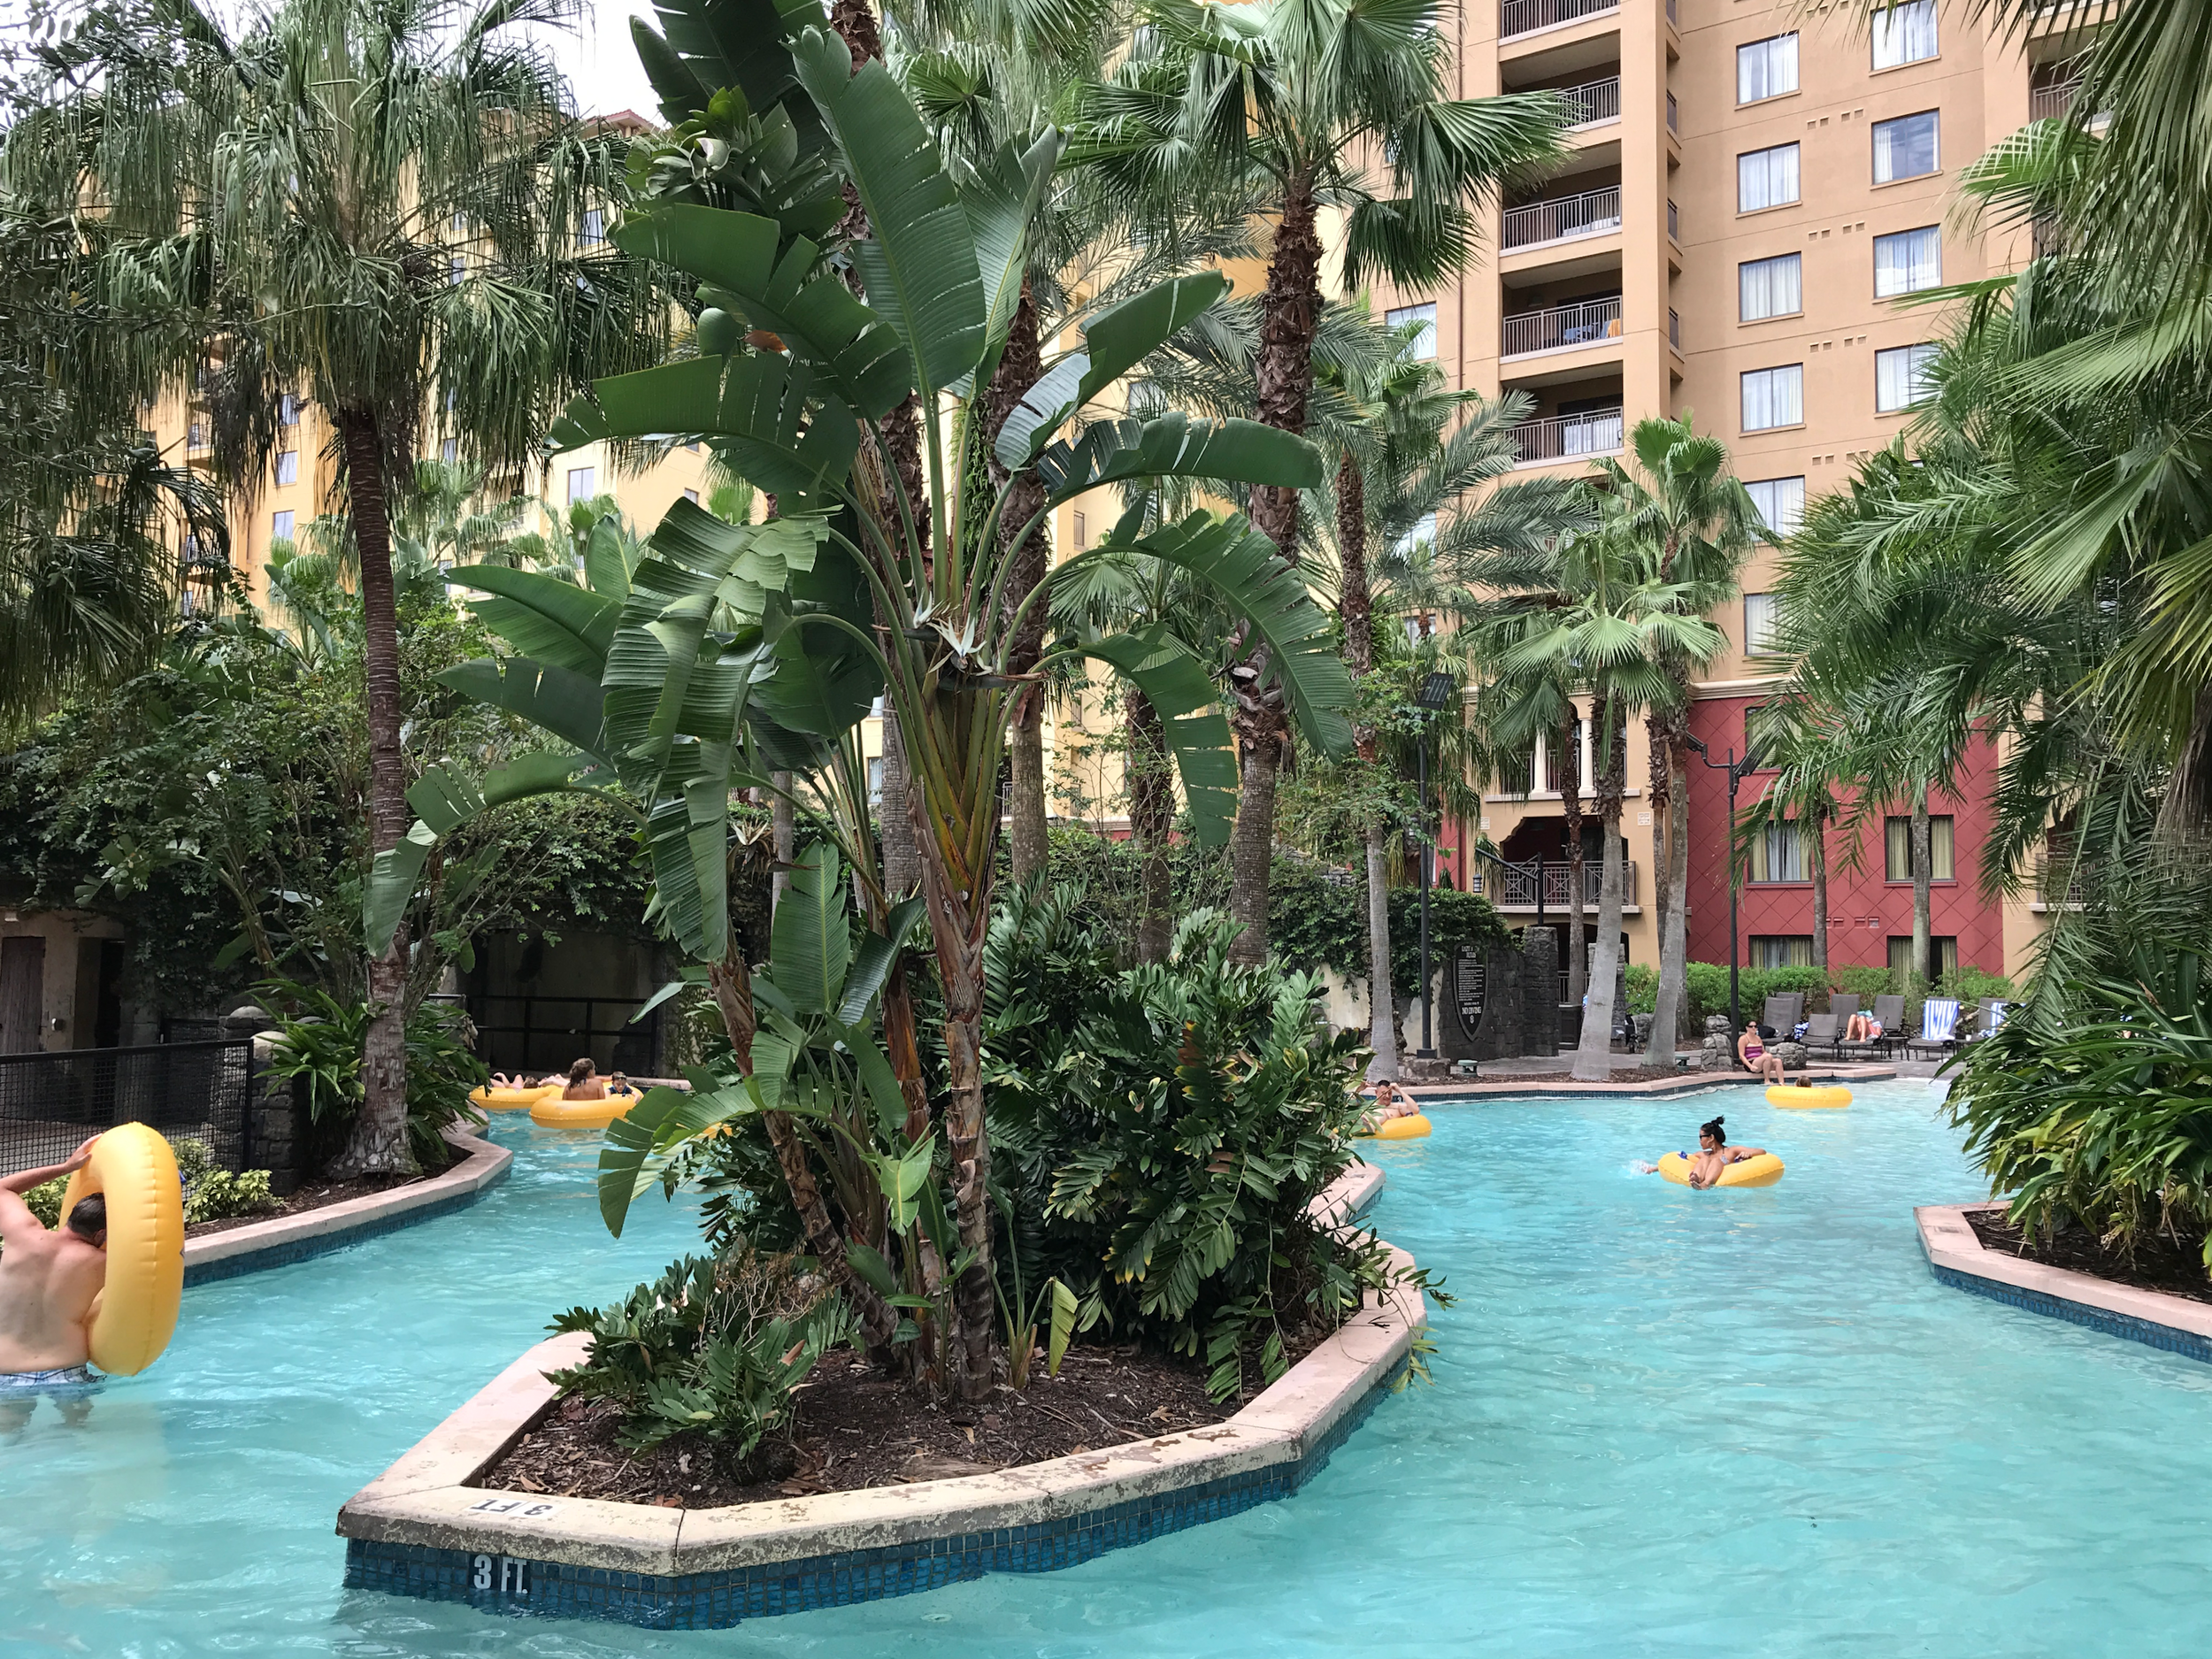 We spent hours on the lazy river outside our building.